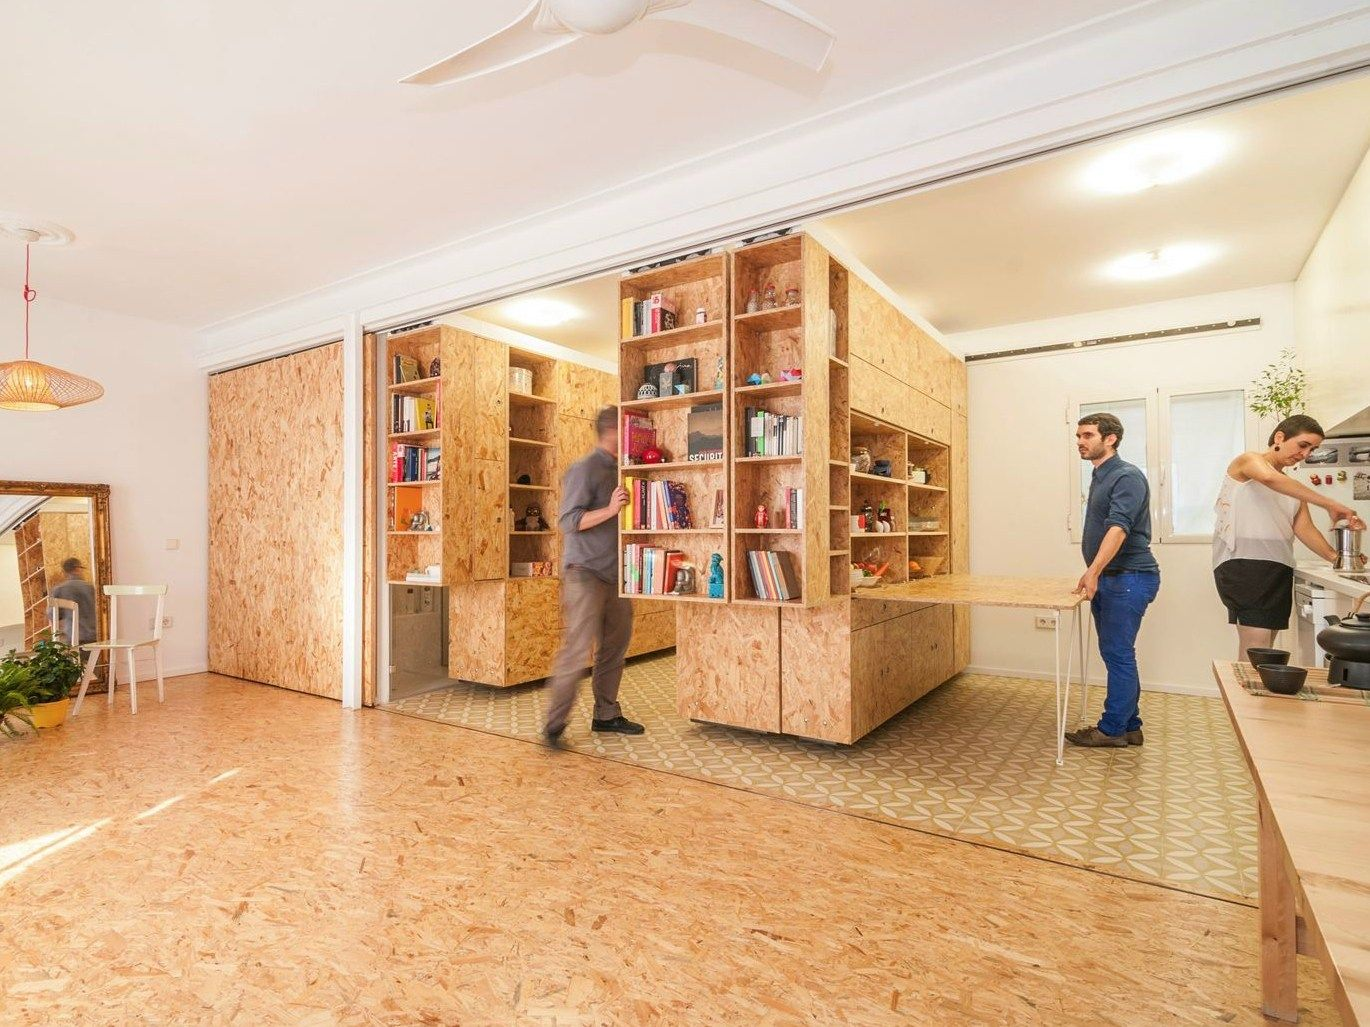 All I Own House di PKMN architectures